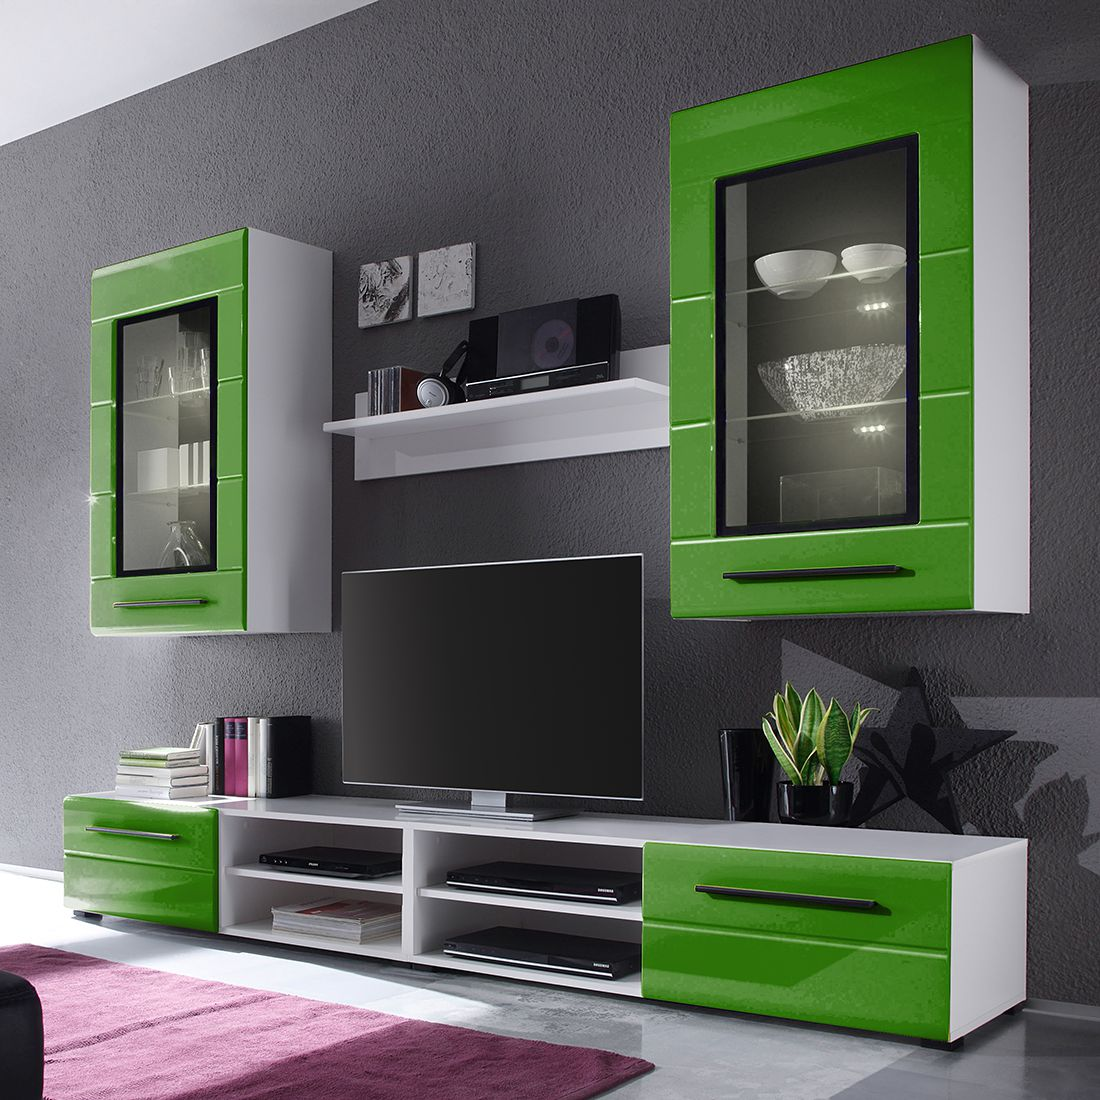 14 sparen wohnwand motley 4 teilig ab 299 99. Black Bedroom Furniture Sets. Home Design Ideas